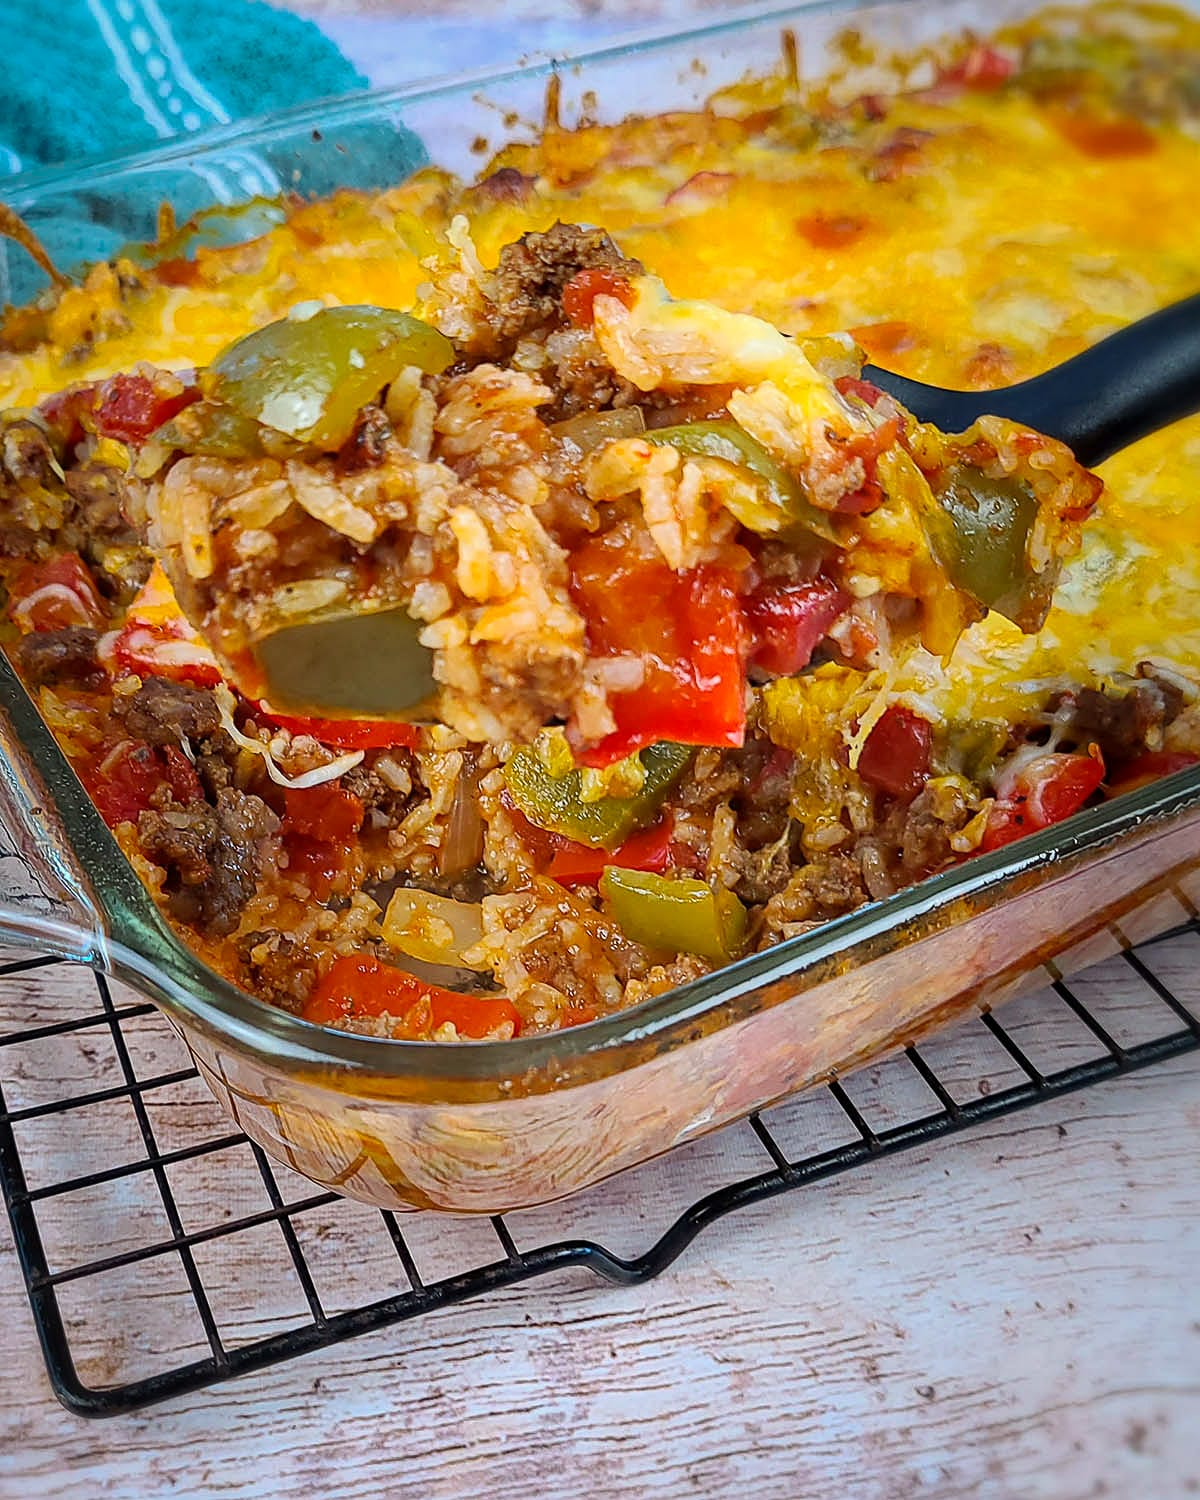 bell pepper casserole being served from a casserole dish with a black spoon